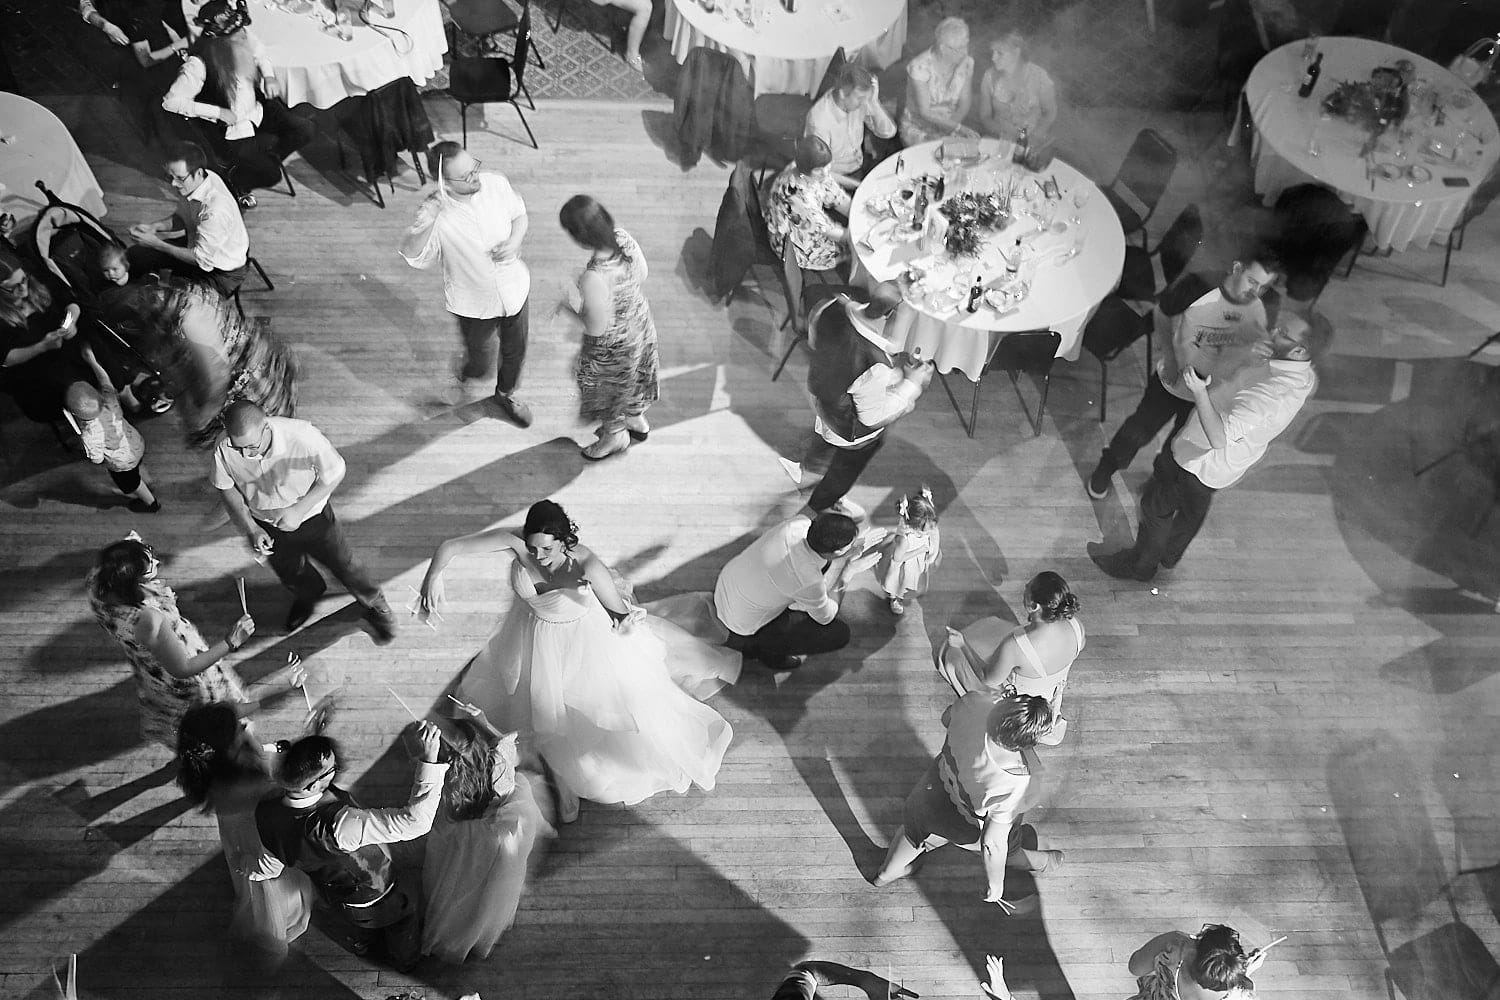 a view of the dancfloor from above during a wedding